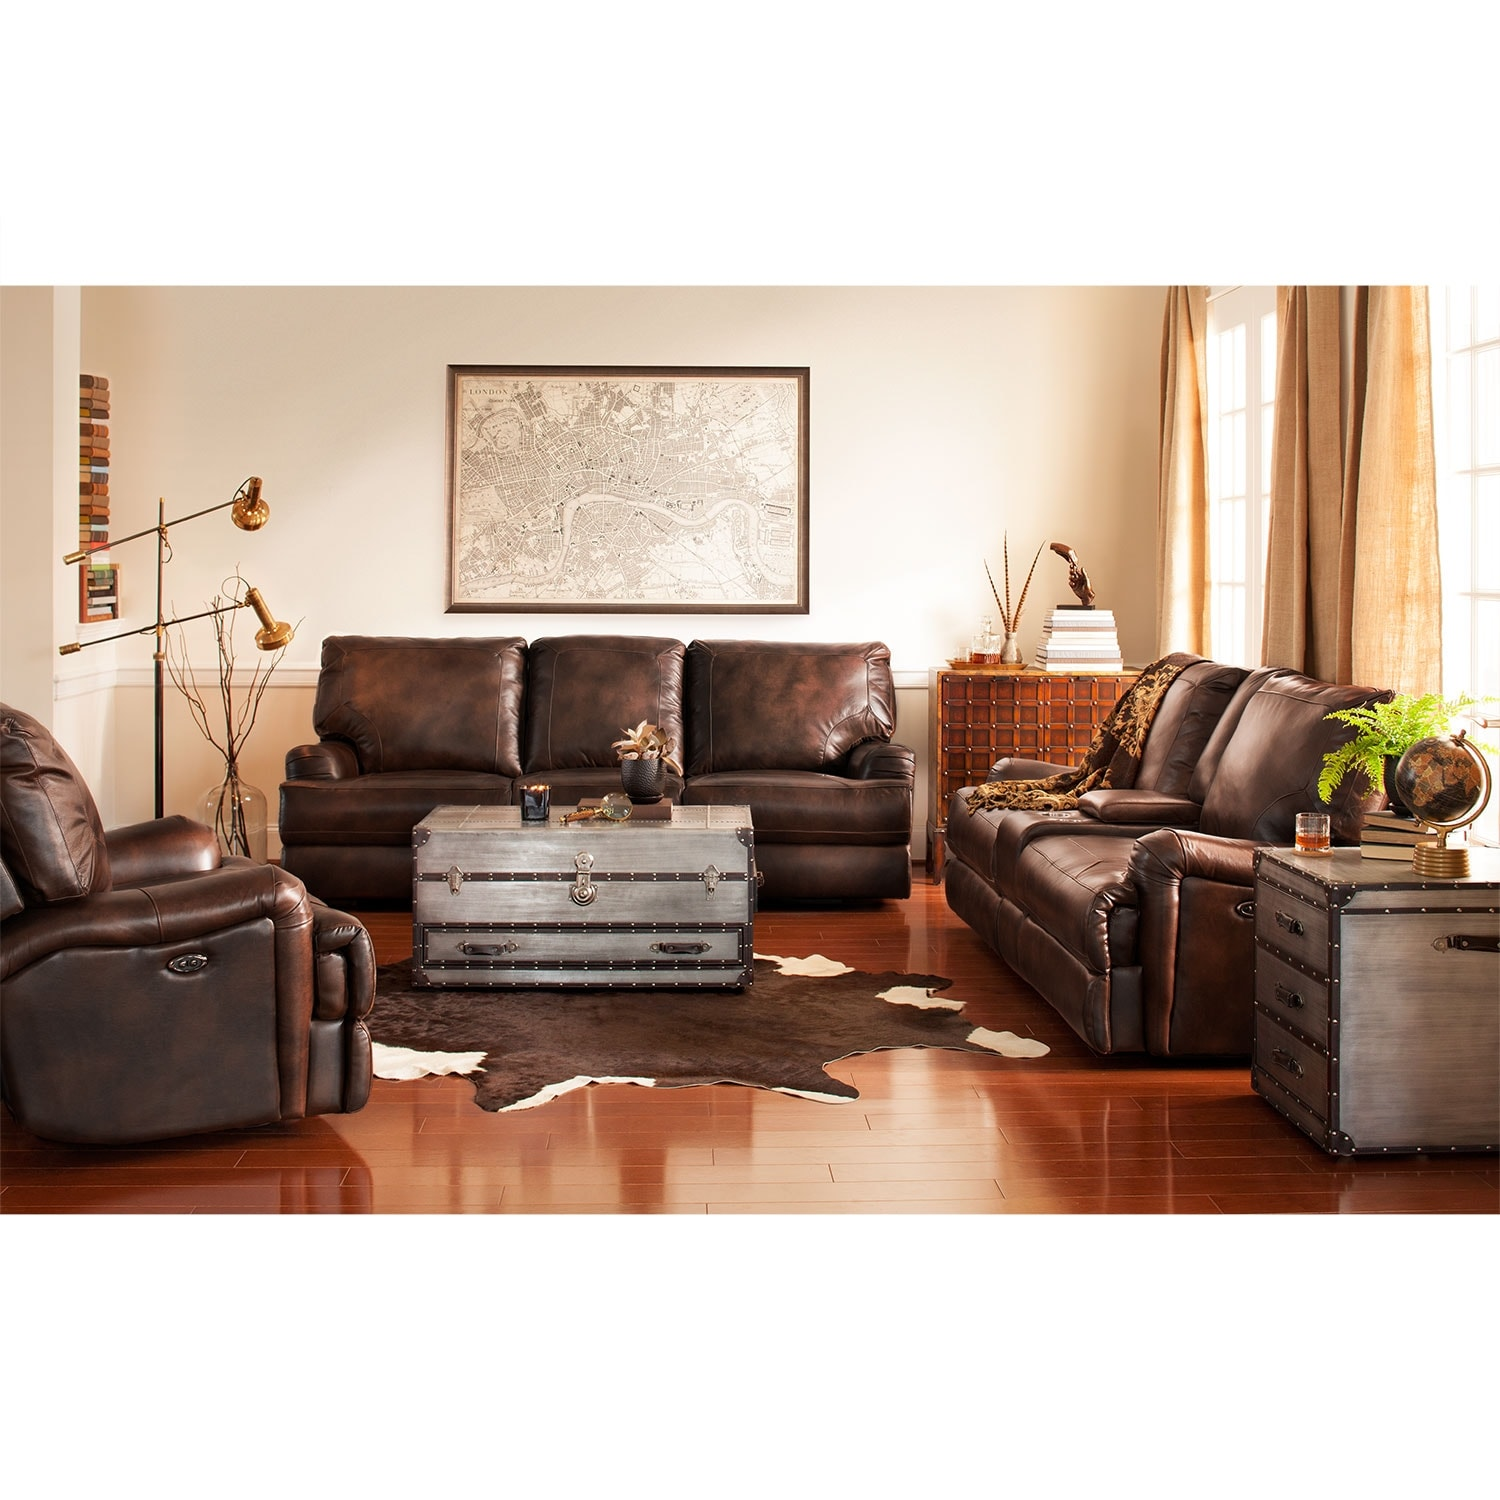 Living Room Furniture - Kingsway Power Reclining Sofa, Loveseat and Recliner Set - Brown